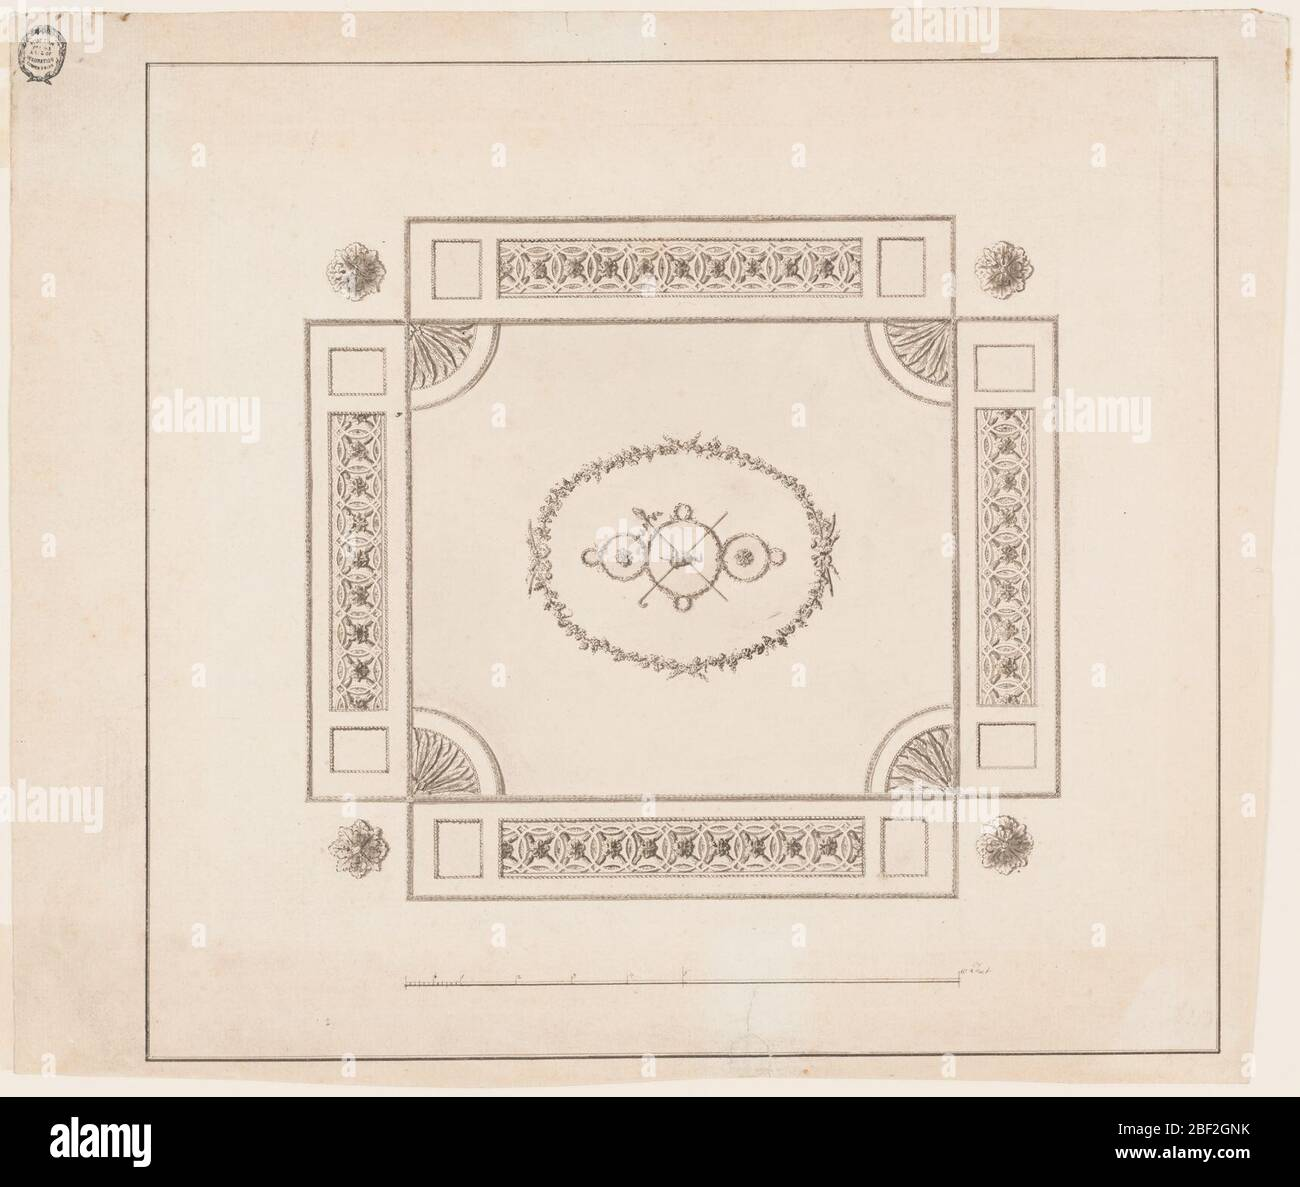 Design for an Oblong Plaster Ceiling. Horizontal format design for an oblong plaster ceiling. Rosettes in the four corners. In the center is an ovoidal wreath formed by twigs within which are slopes formed by a garland. In the center is an urn, crossed, a thyrsus and a shepherd's staff. Stock Photo